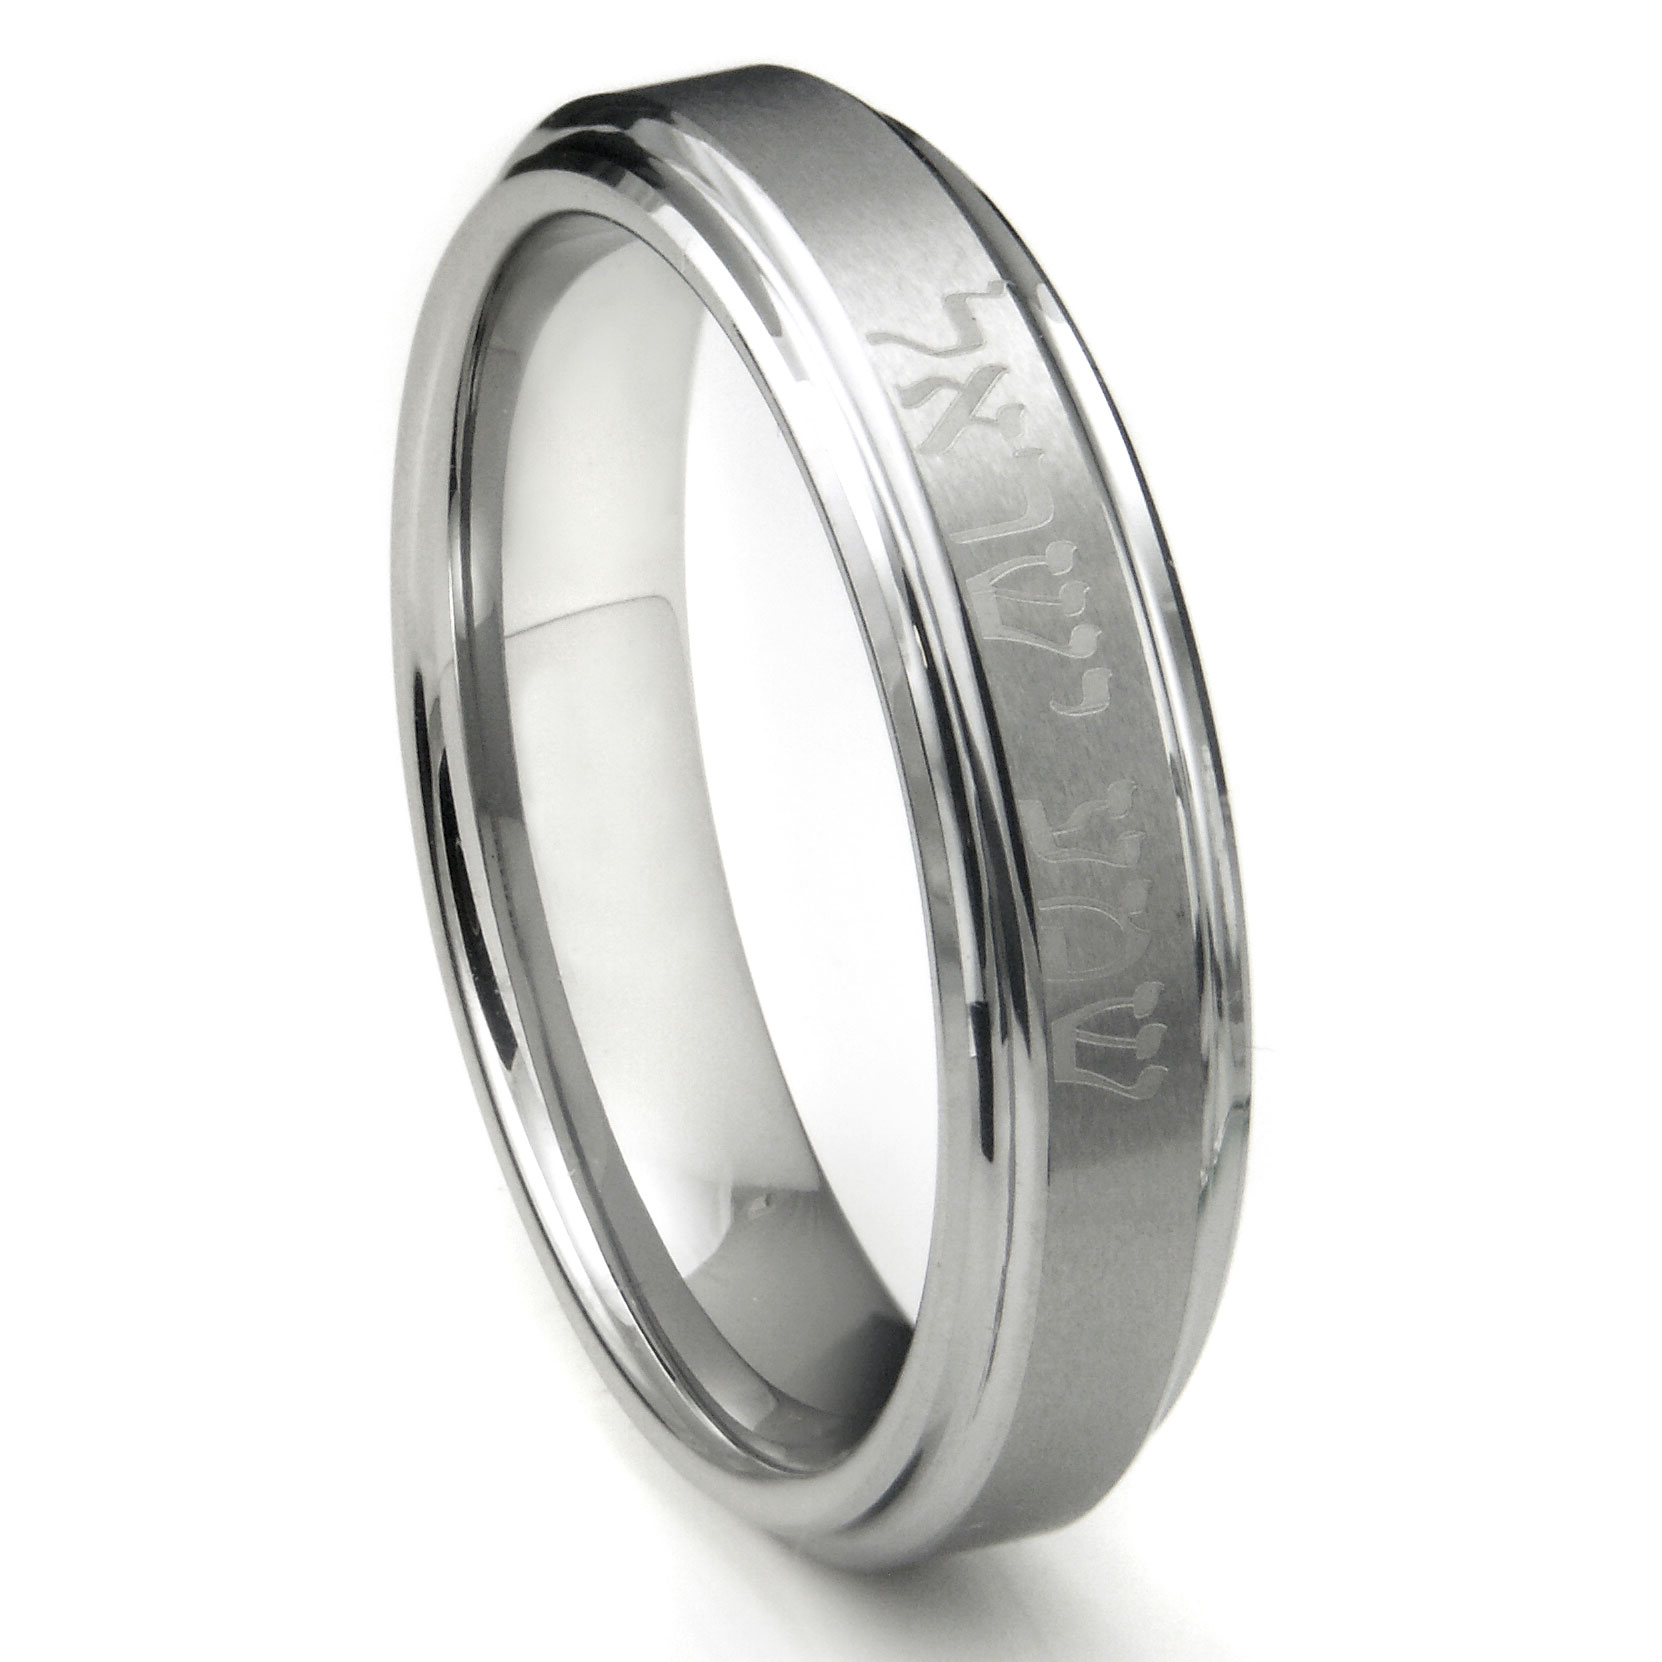 couple engraved his manworksdesign new s wedding com cz her rings bands hand titanium